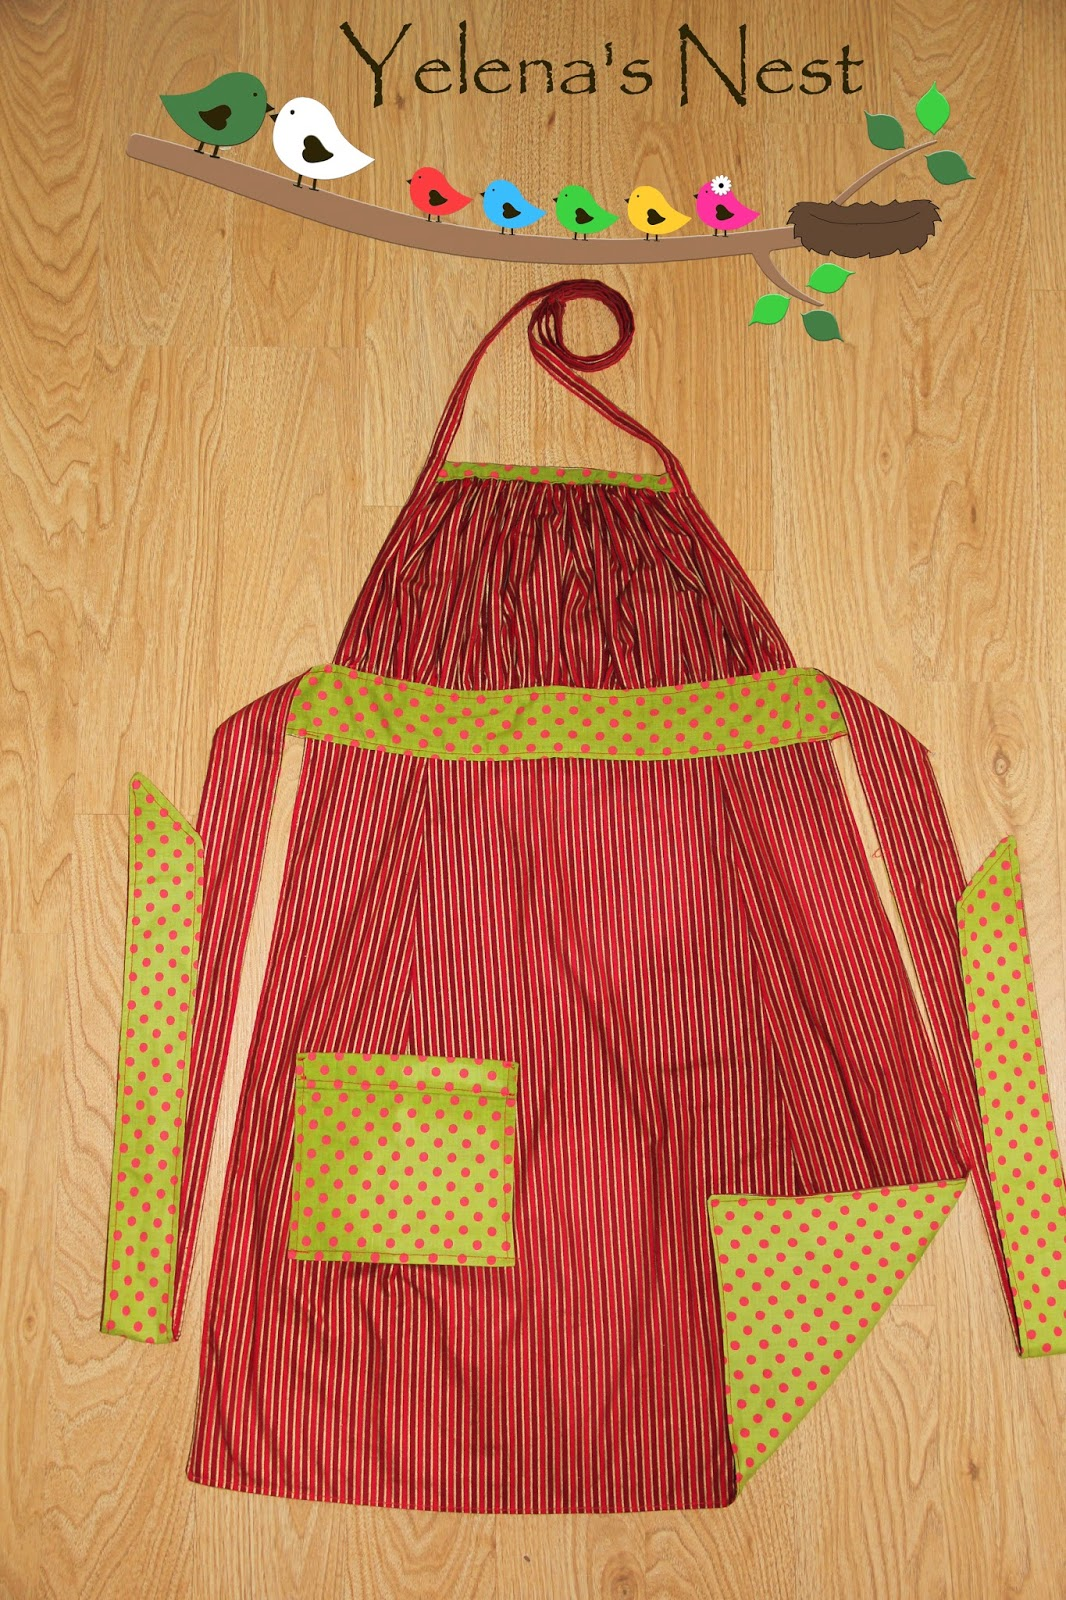 White apron joann fabrics - Provided Of Course That We Use Current Jo Ann S Fabric And That The Colors Go With The Season Right Now The Season Is Christmas Winter So I Made Myself